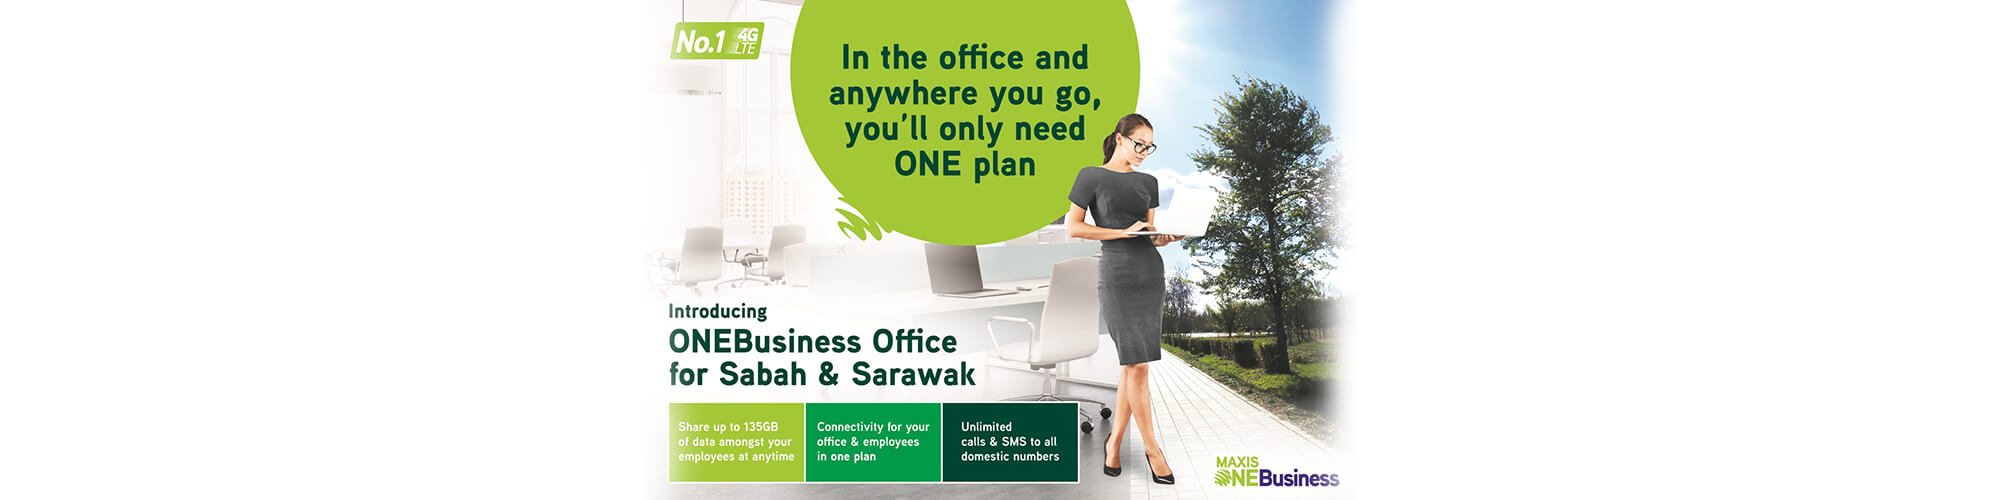 ONEBusiness Office